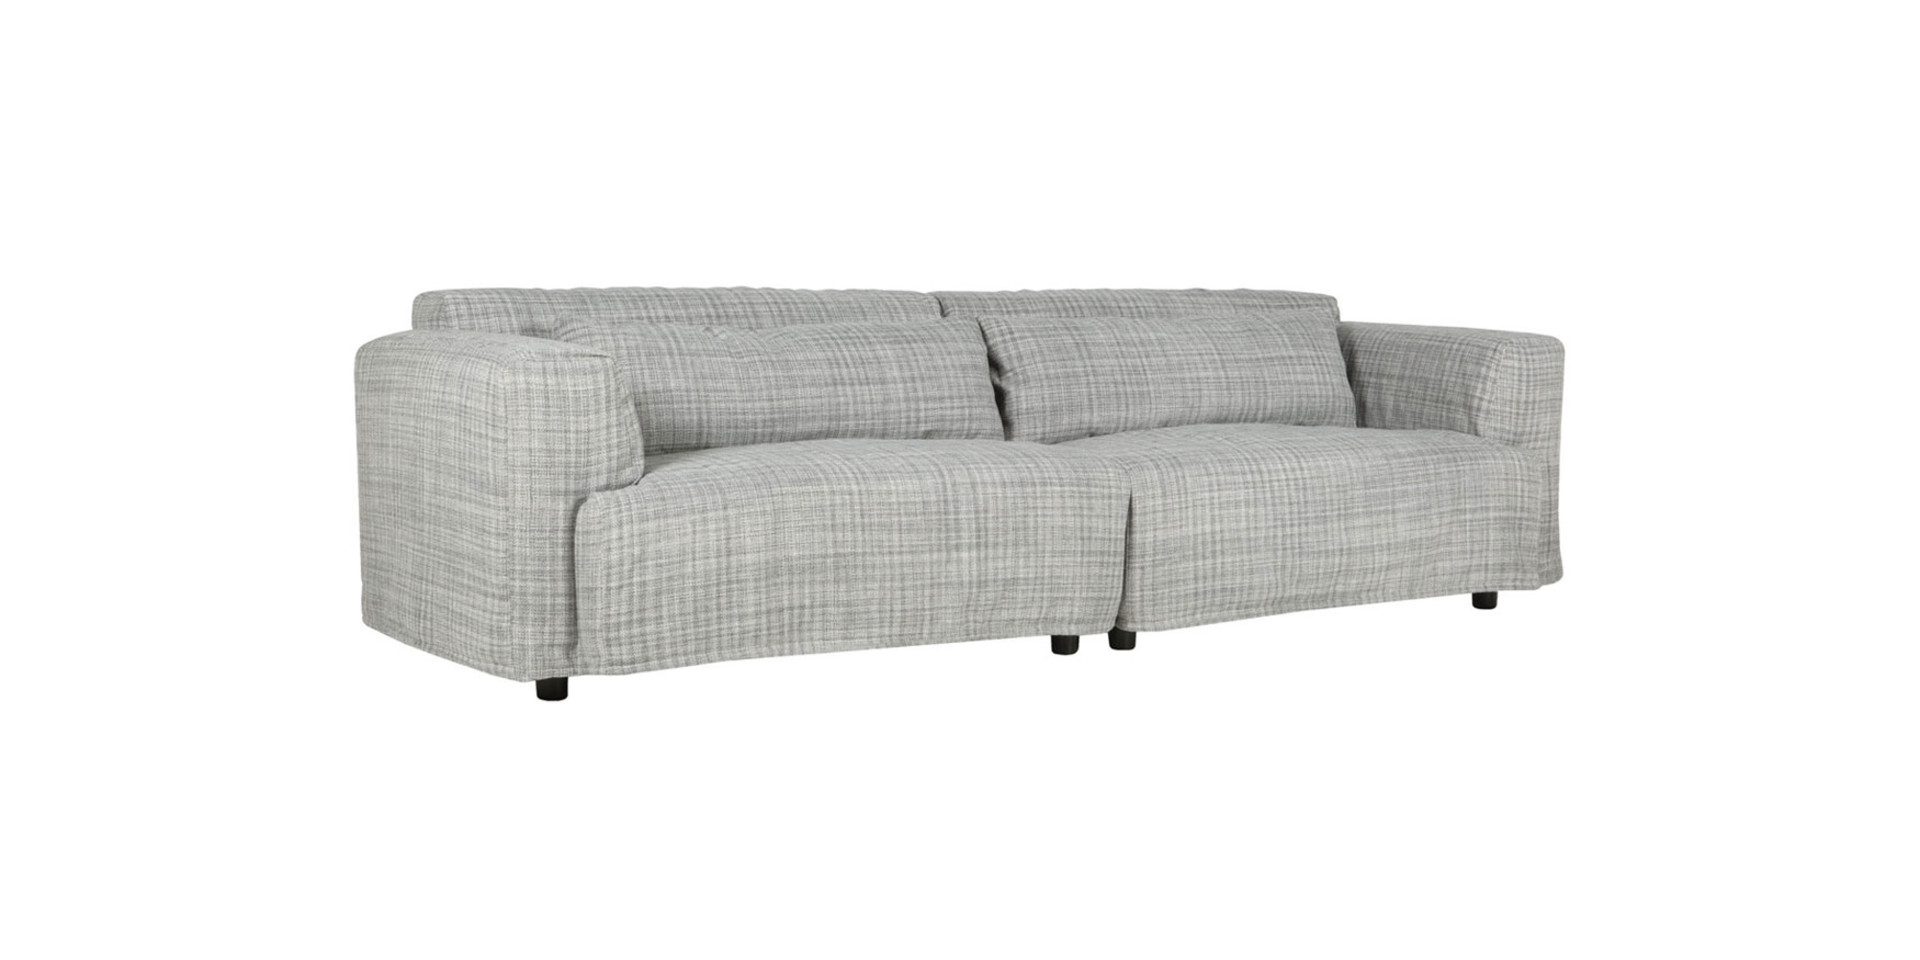 sits-leo-canape-4seater_gunnar08_grey_2_1